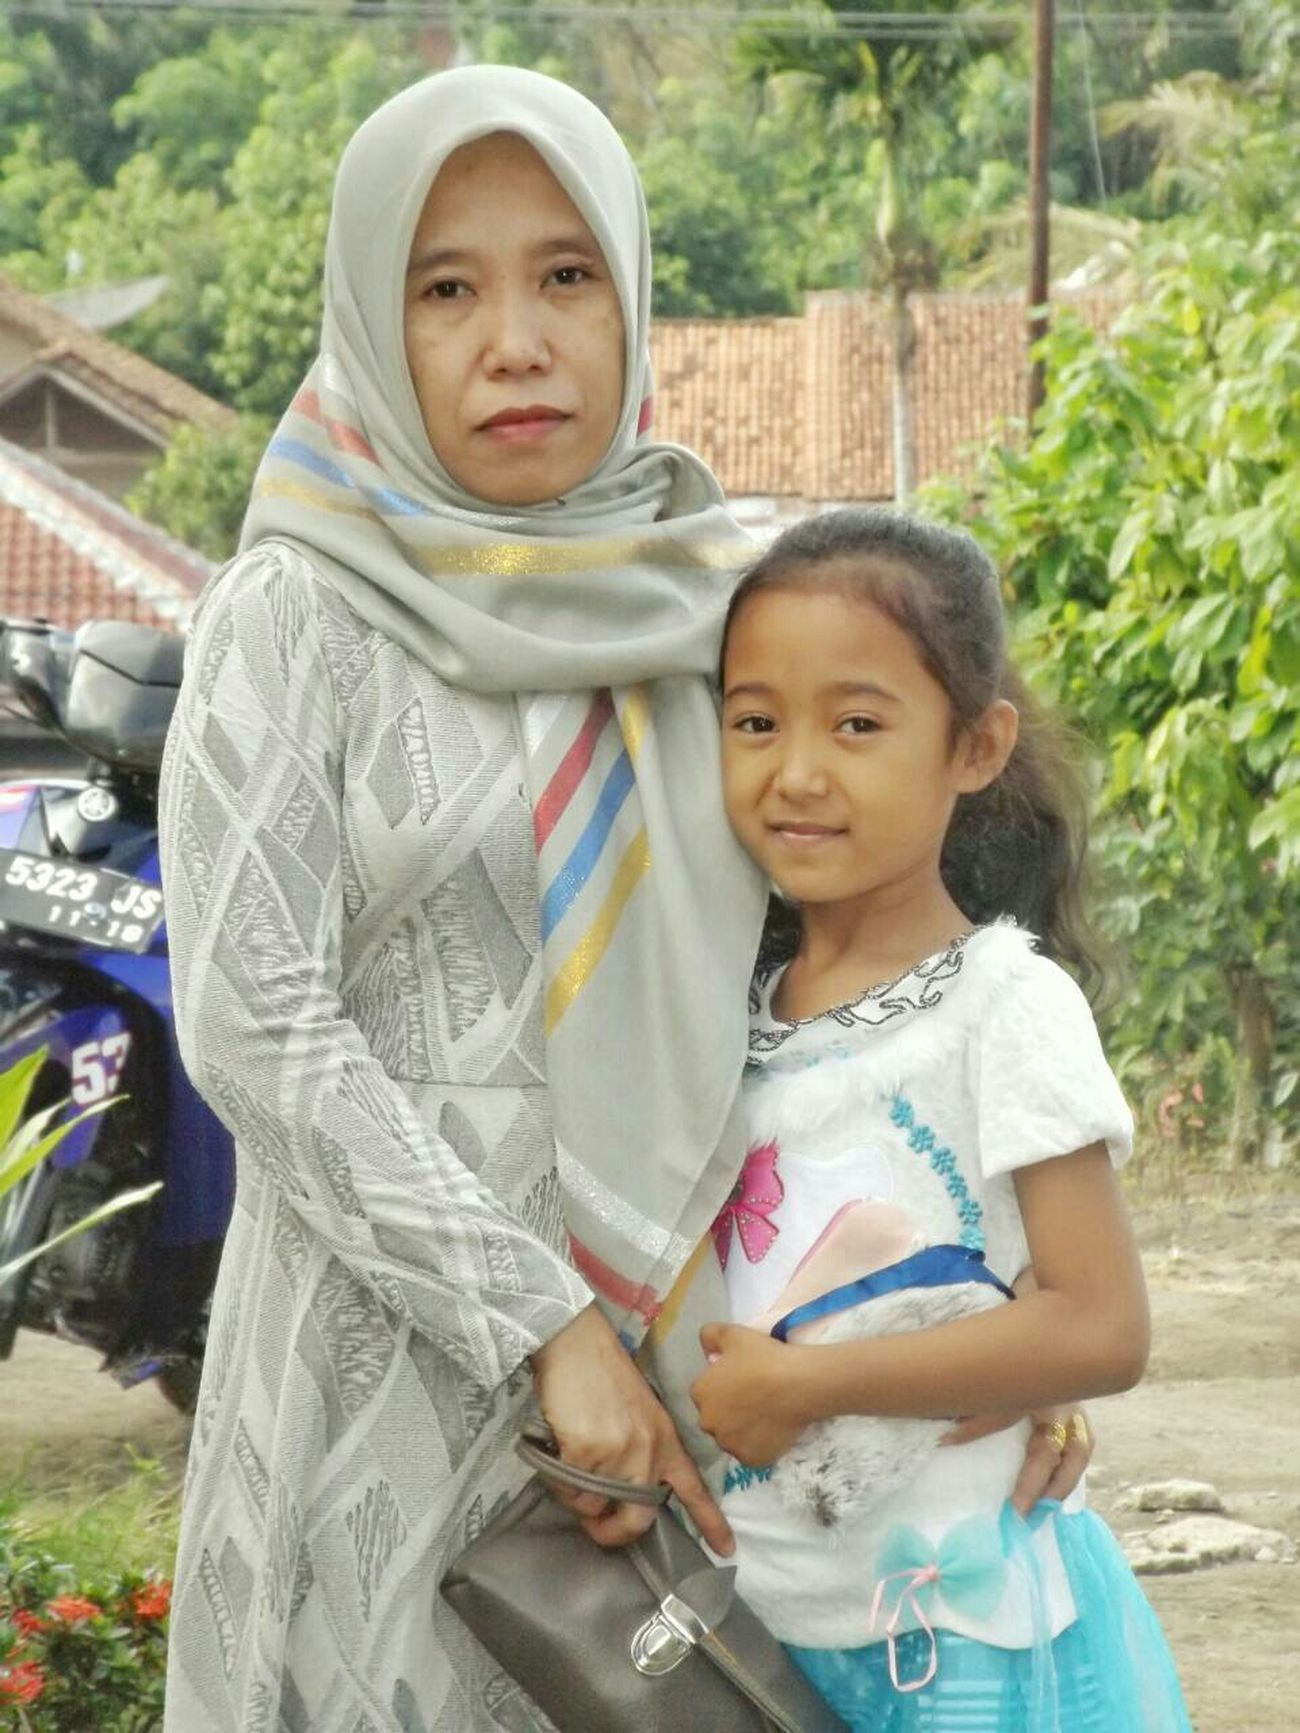 Happy birthday mom 😘😍😁😄💕💋💏✌🌹🍻🎂 Harapannya yg baik-baik aja ya😁 semoga panjang umur,sehat selalu,dll. Happy Birthday Mom! 5 Oktober 2015 Senin Vscocam Panoramashot Taking Photos My Mom My Little Sister ♡